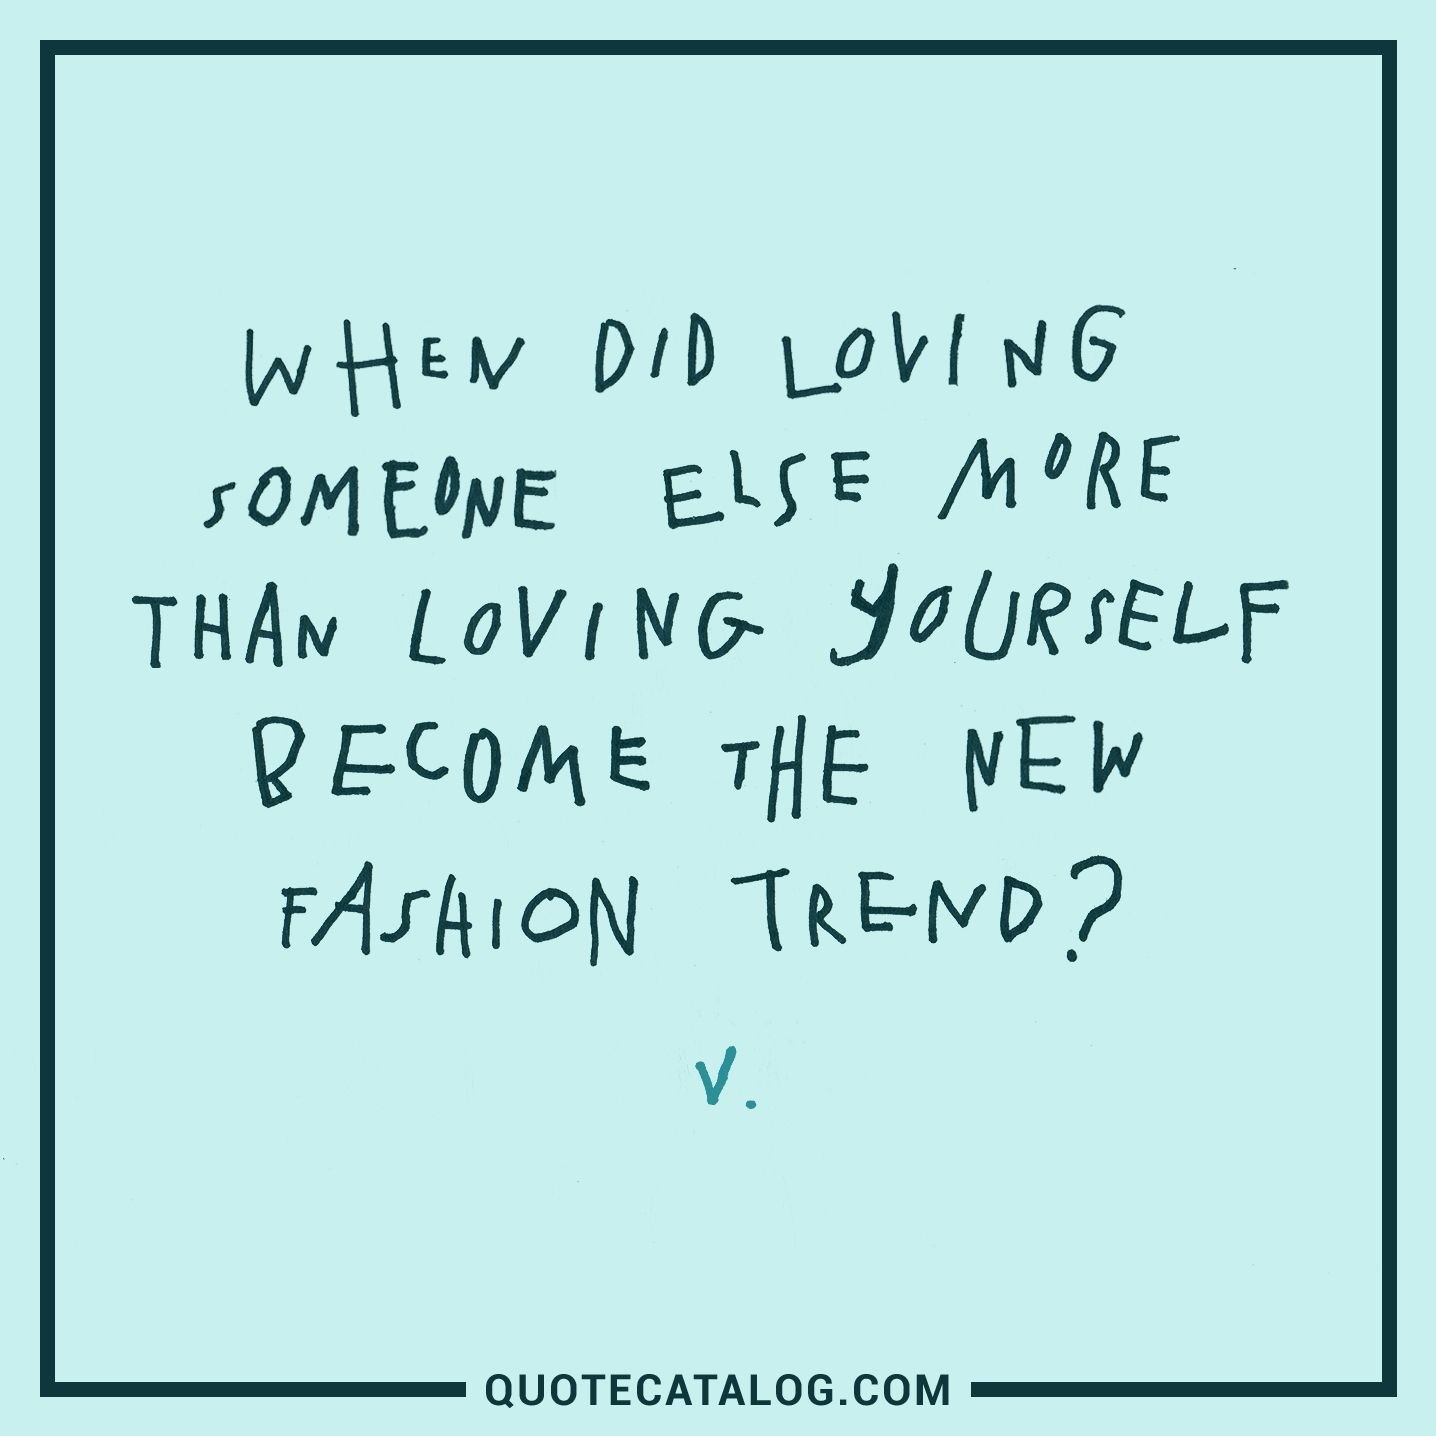 Quotes About Loving Yourself Quotes  V Quote  When Did Loving Someone Else More Than L